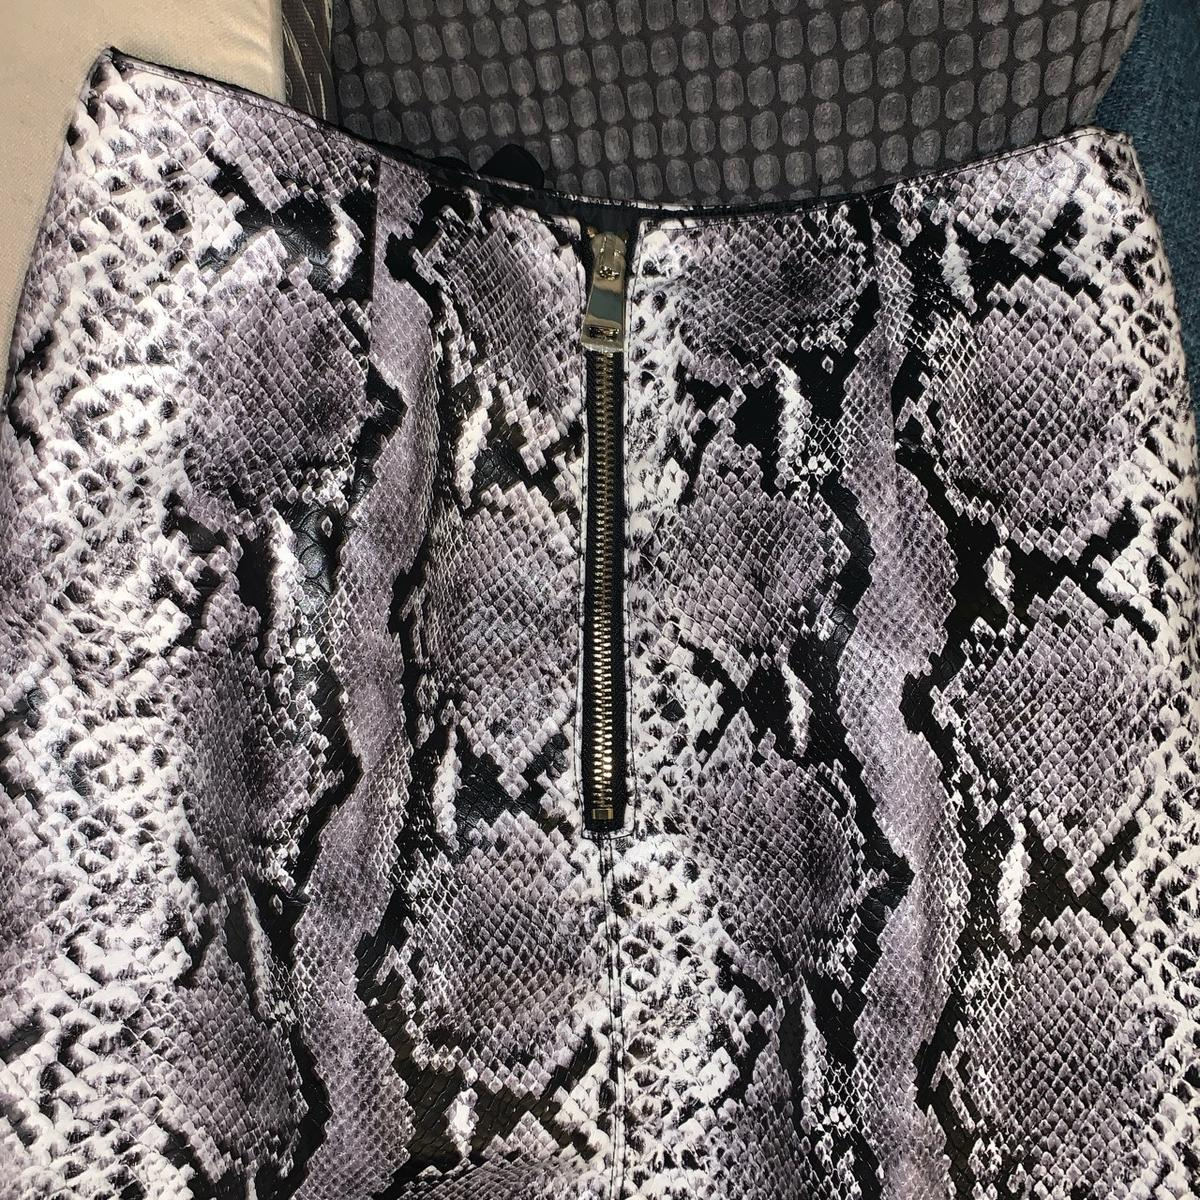 River Island Faux Leather Snakeskin Pencil Skirt Size 6 Good condition  Not #PLT #NastyGal #NFD